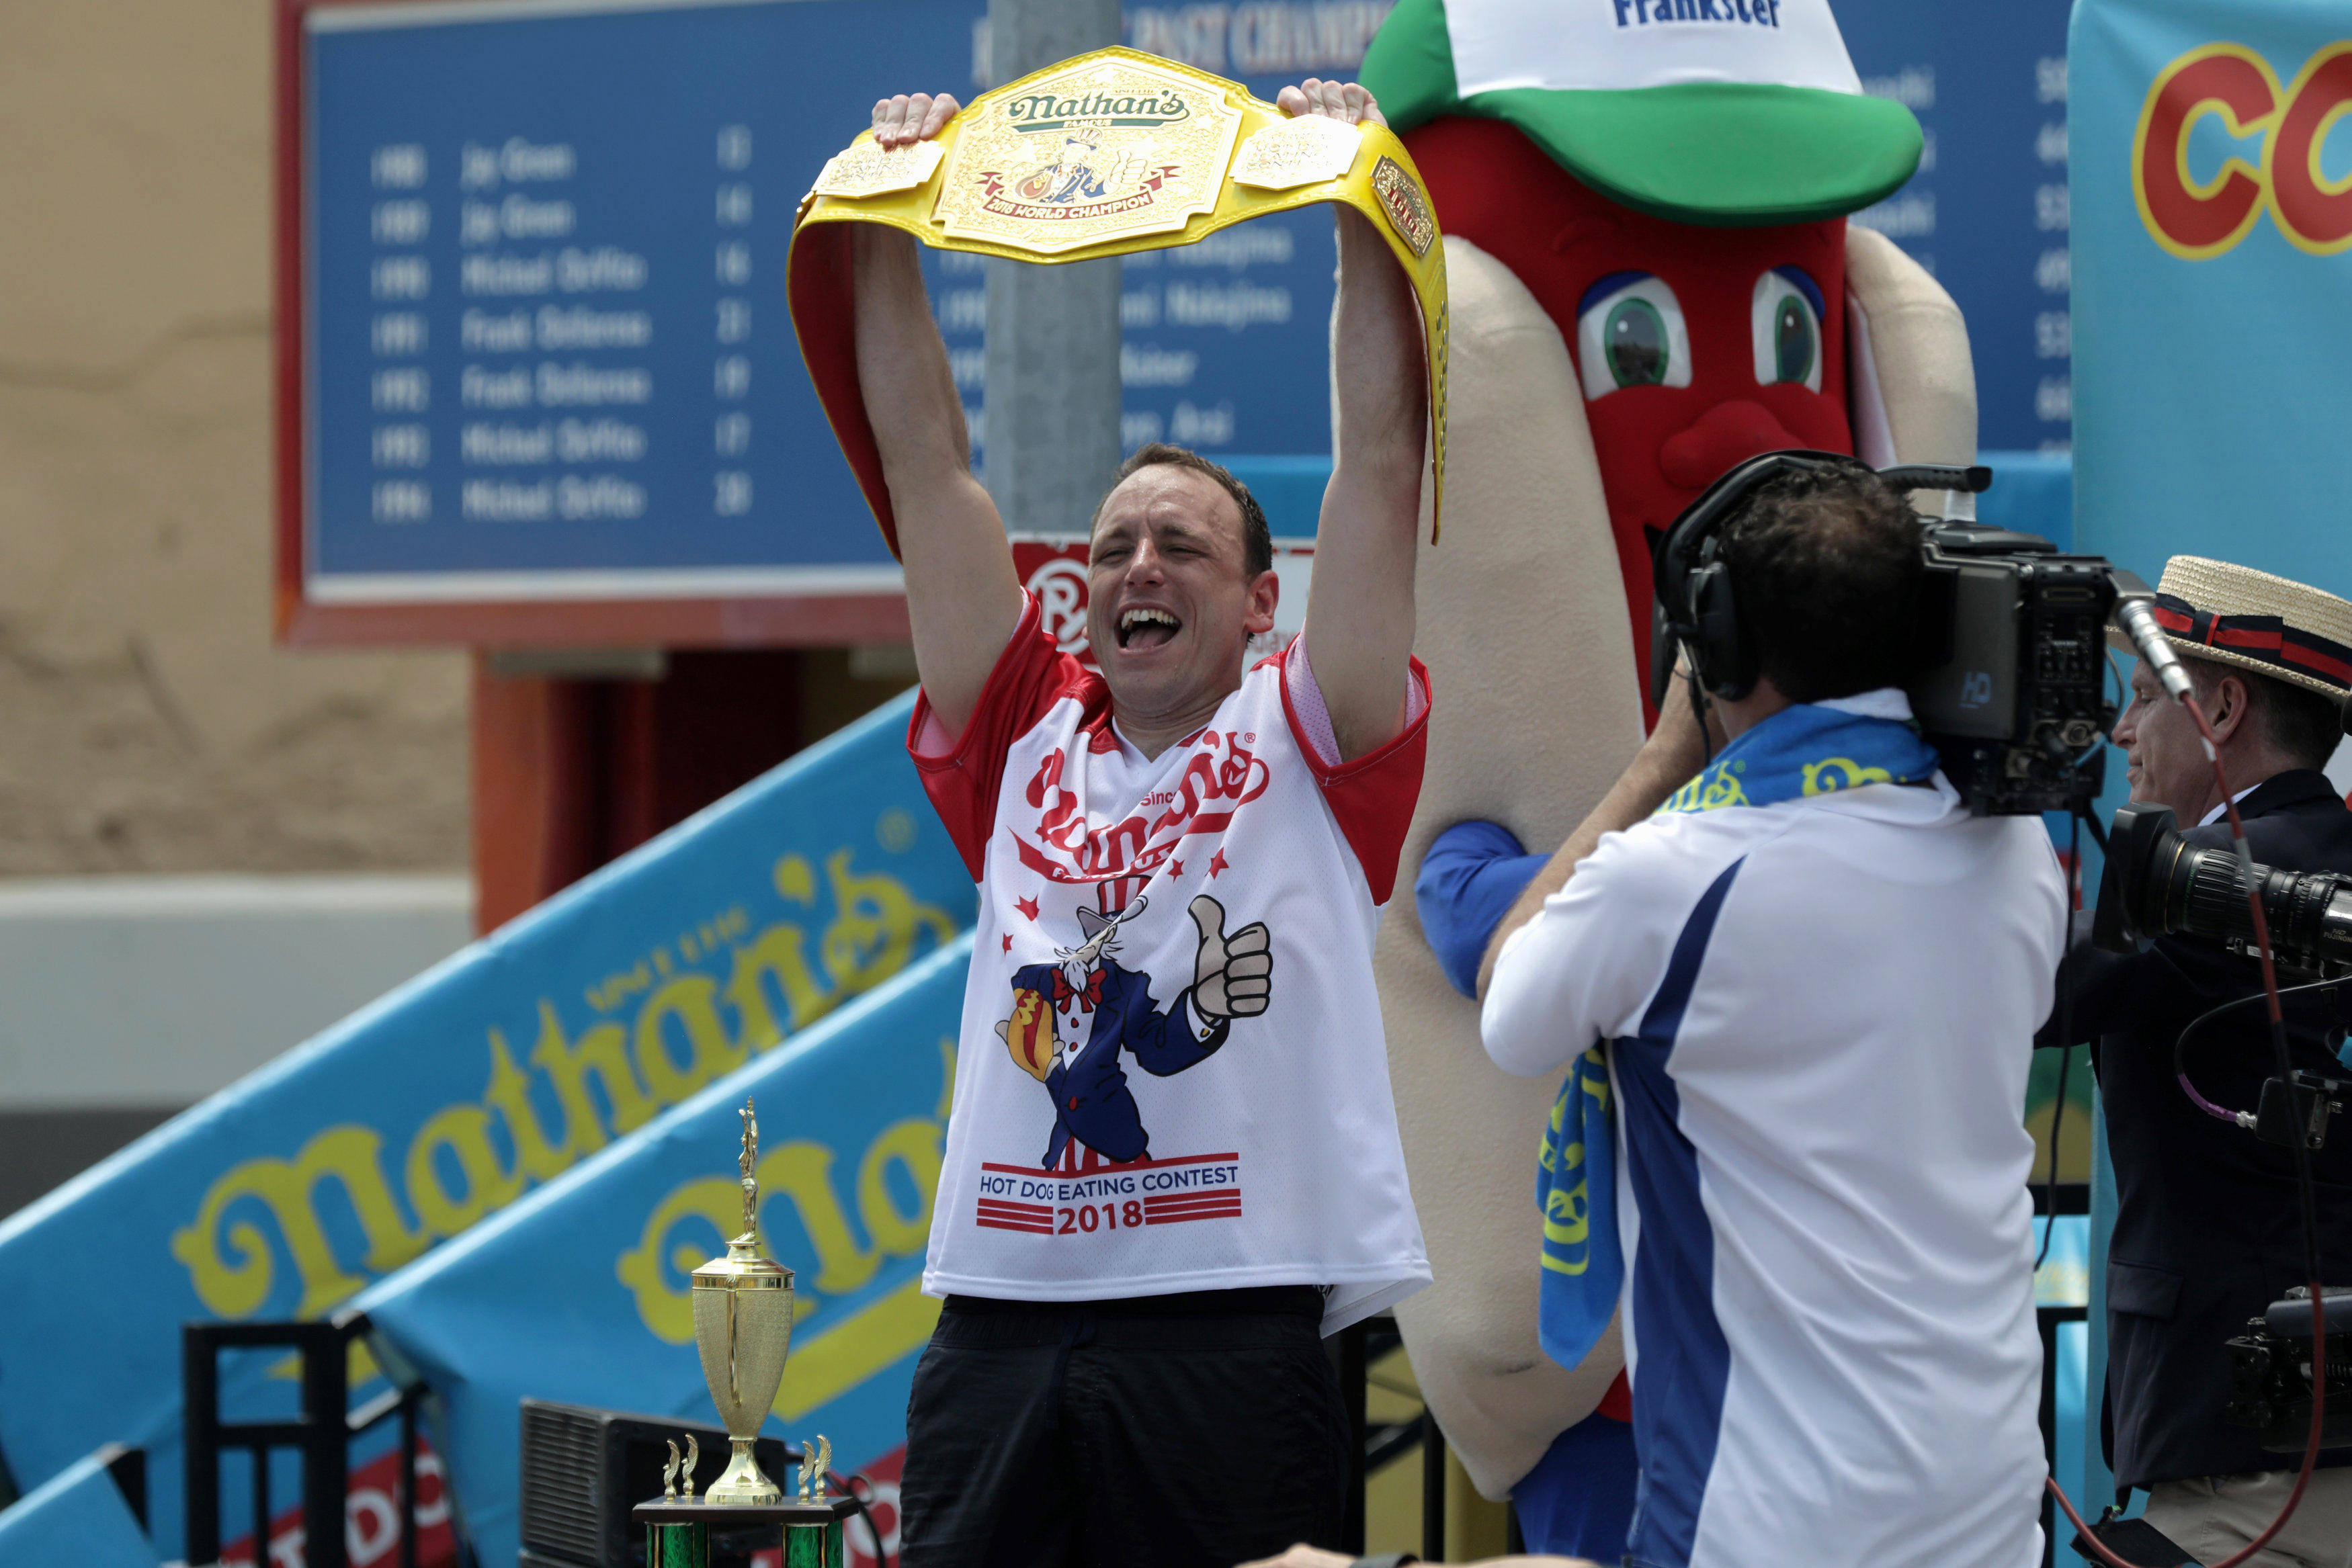 Joey Chestnut wins the annual Nathan's Hot Dog Eating Contest, setting a new world record by eating 74 hot dogs in Brooklyn, New York City